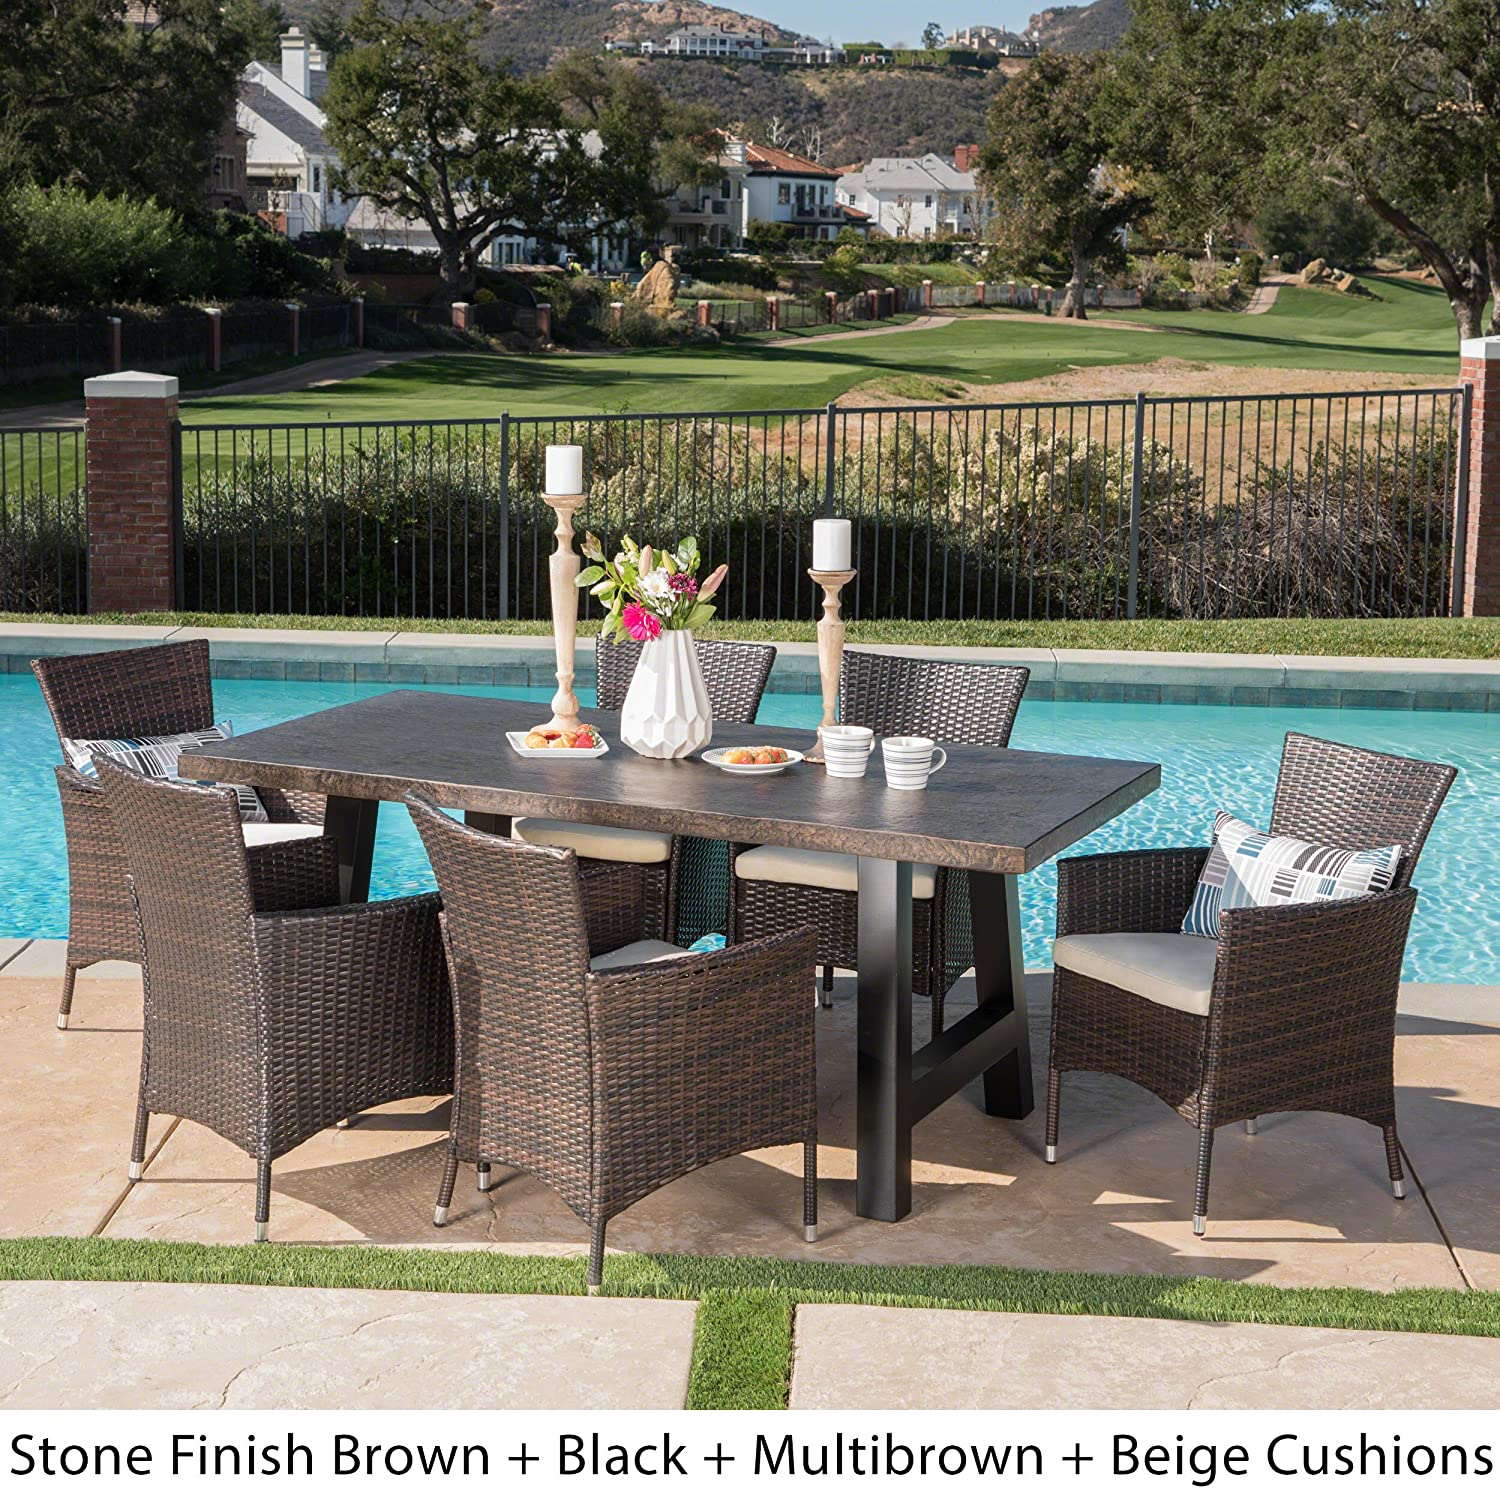 Great deal furniture muriel outdoor 7 piece multibrown wicker dining set with brown stone finish light weight concrete dining table and beige water